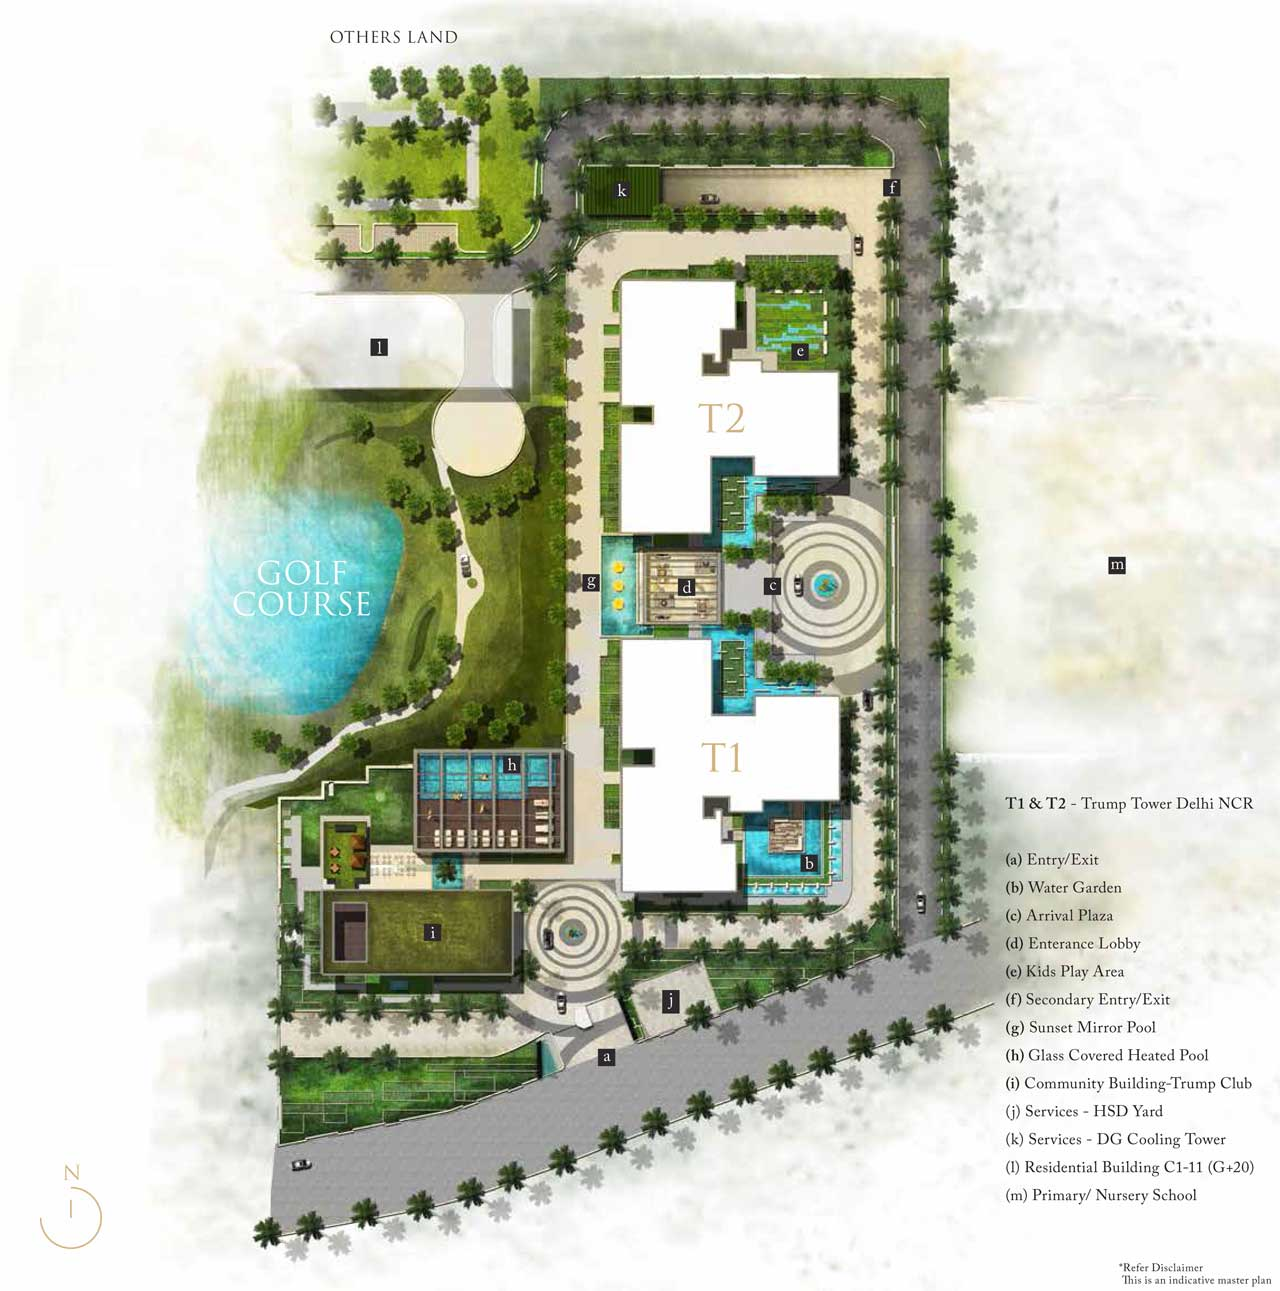 Trump Tower Gurgaon Master Plan